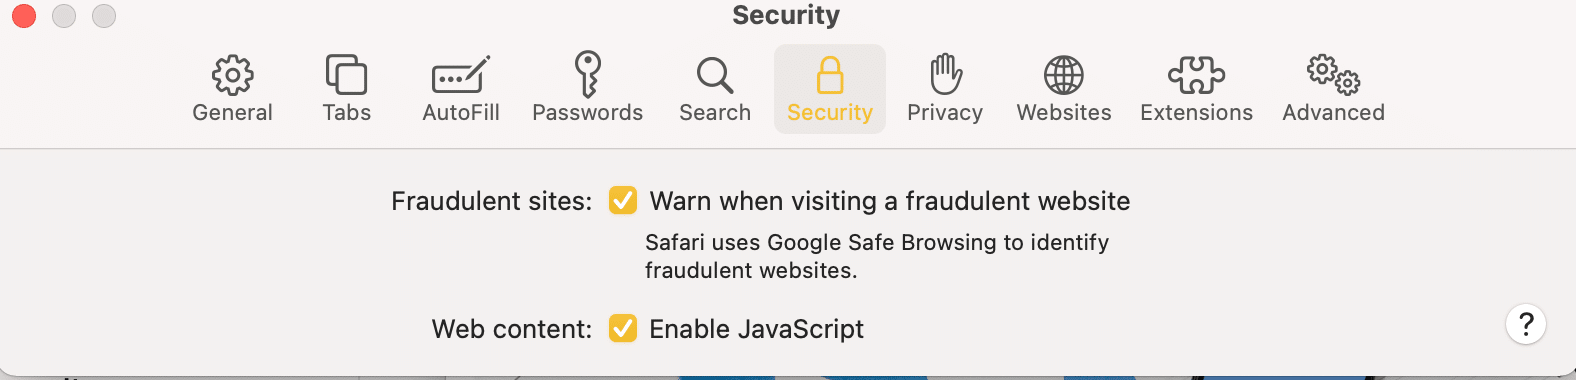 Turn the toggle ON for Warn when visiting a fraudulent website